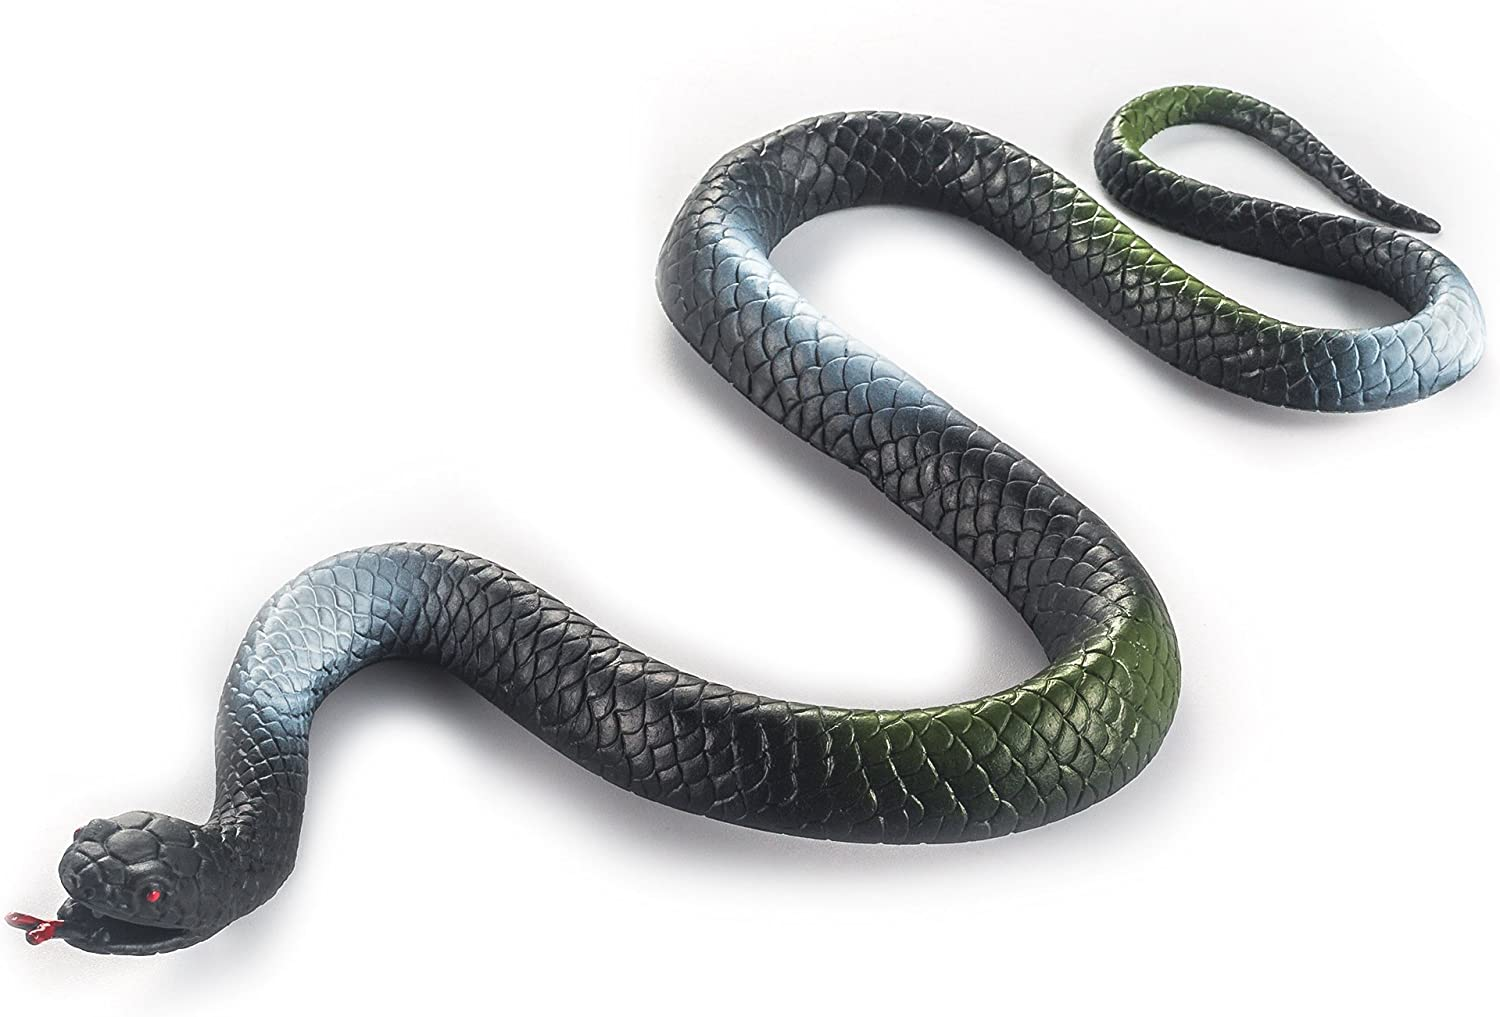 Rubber Snakes To Scare Birds